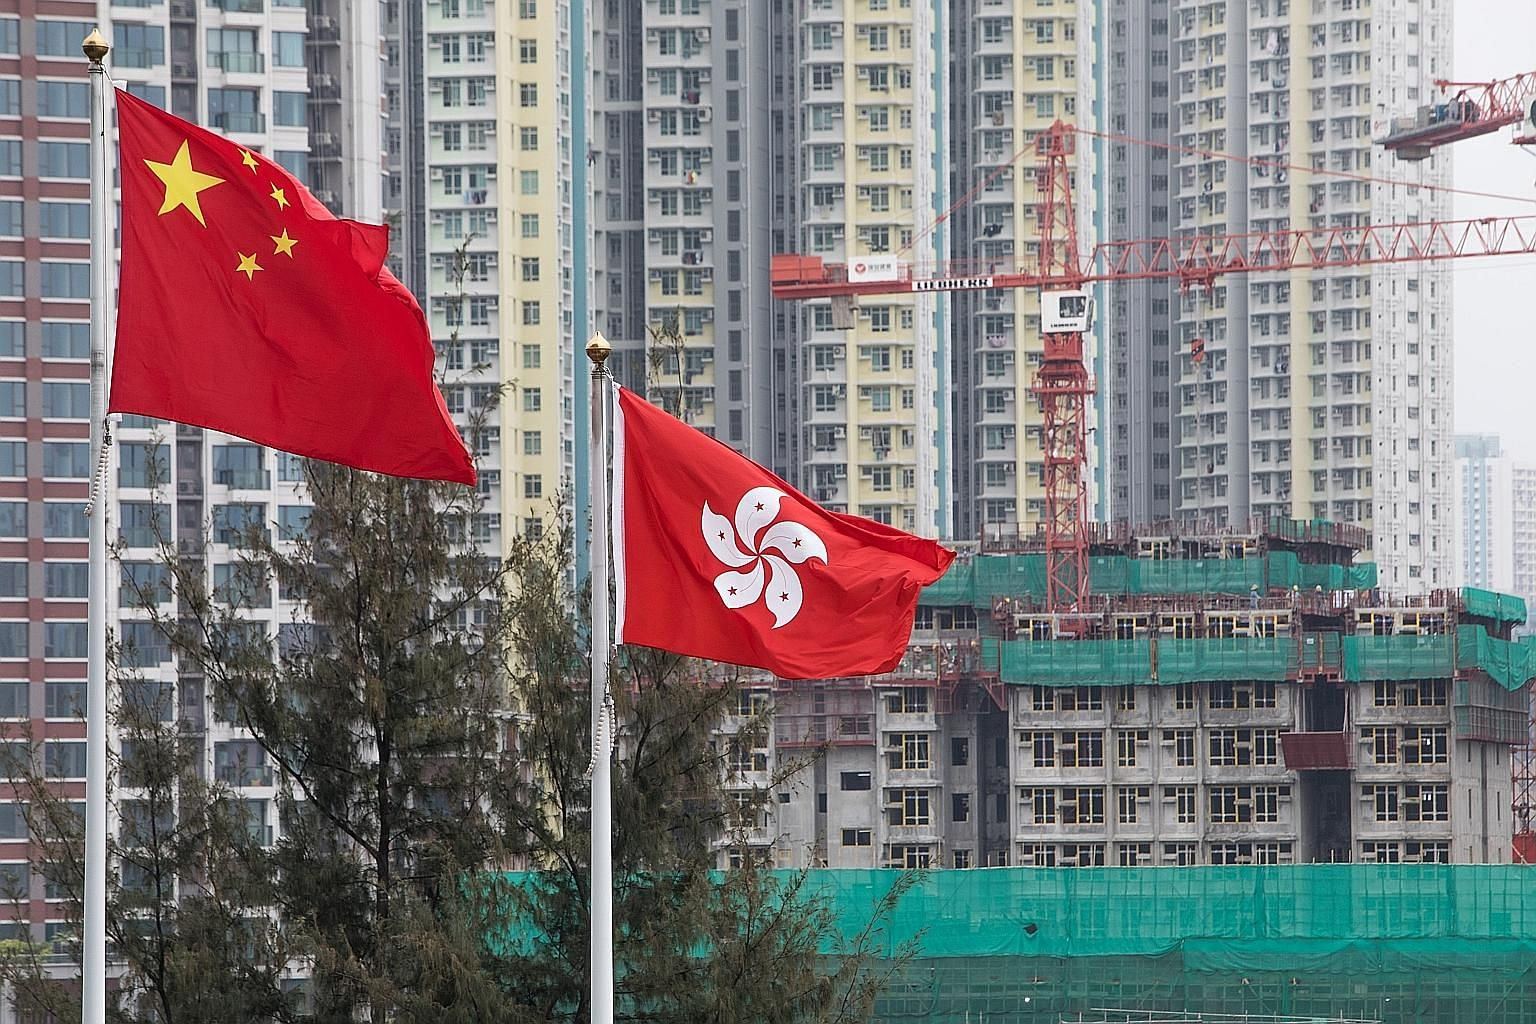 The flags of China (left) and Hong Kong fluttering in front a construction site in Hong Kong. Chinese developers, including HNA and Logan Property, have outbid local contenders for expensive land, snapping up all HK$37 billion (S$6.6 billion) worth